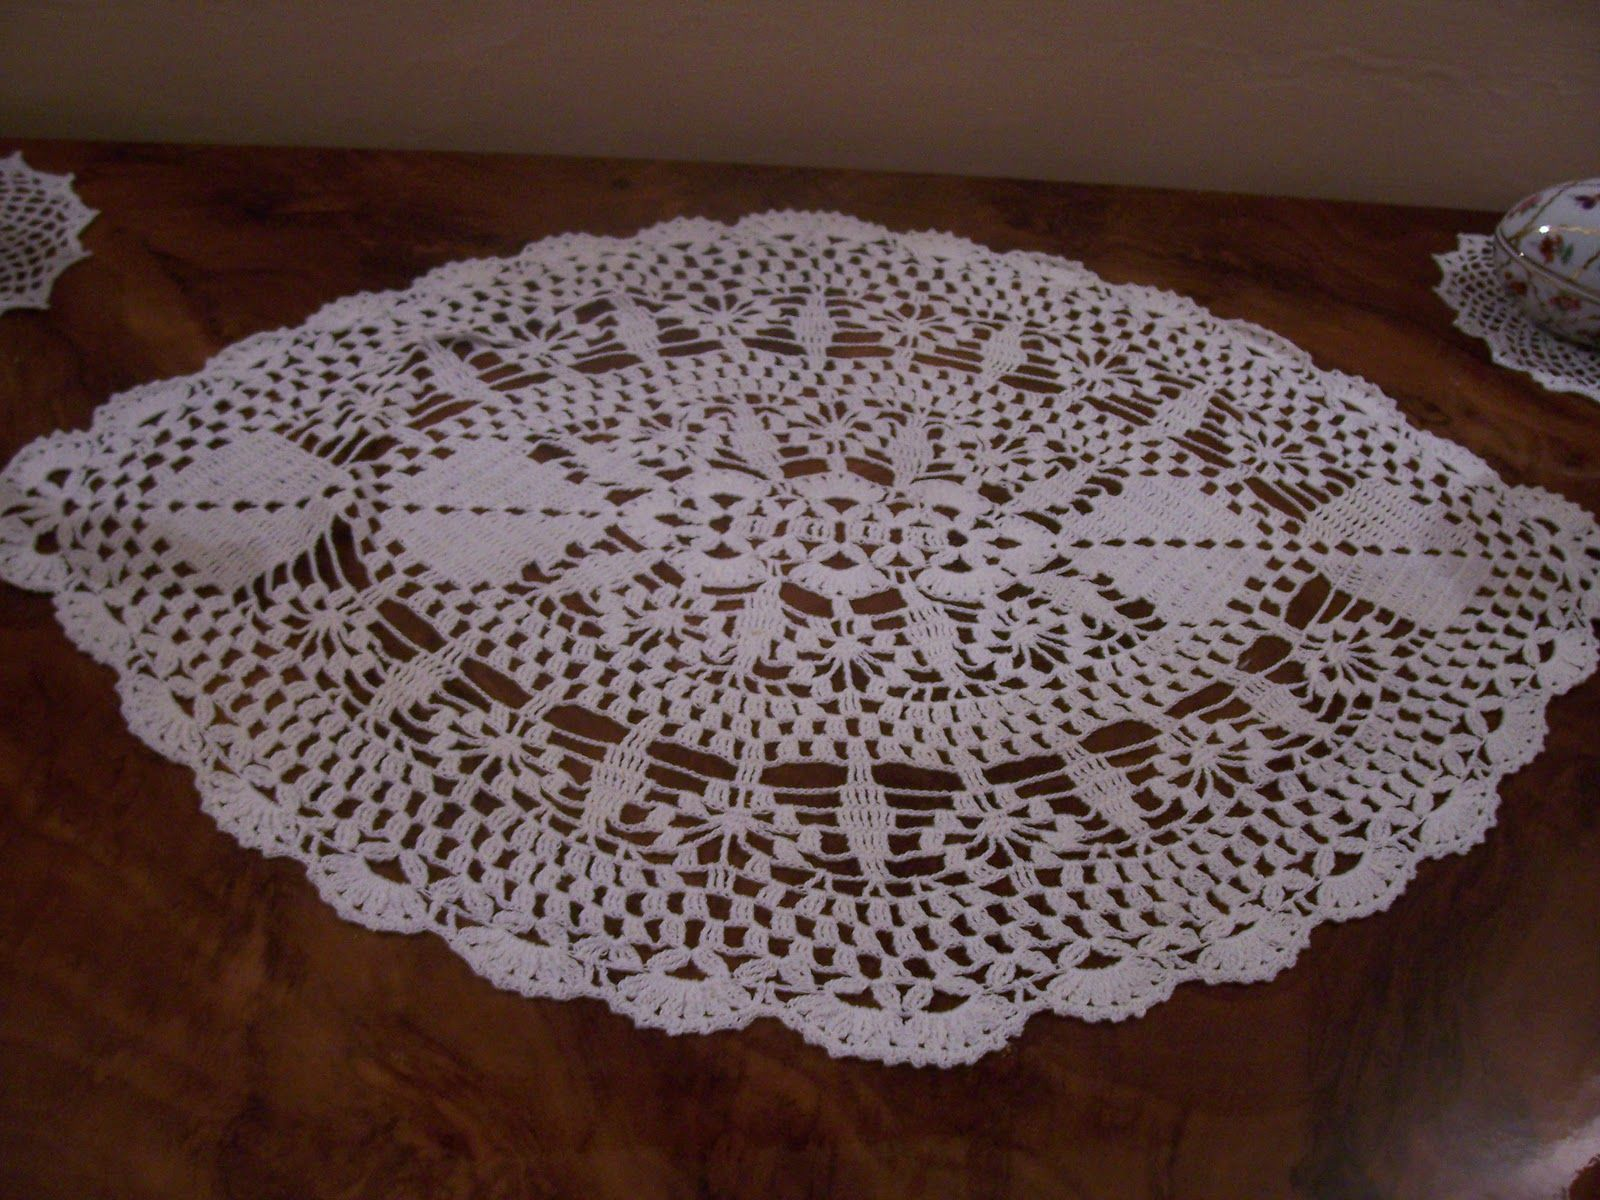 easy crochet doily patterns free | FREE OVAL DOILY PATTERNS TO ...